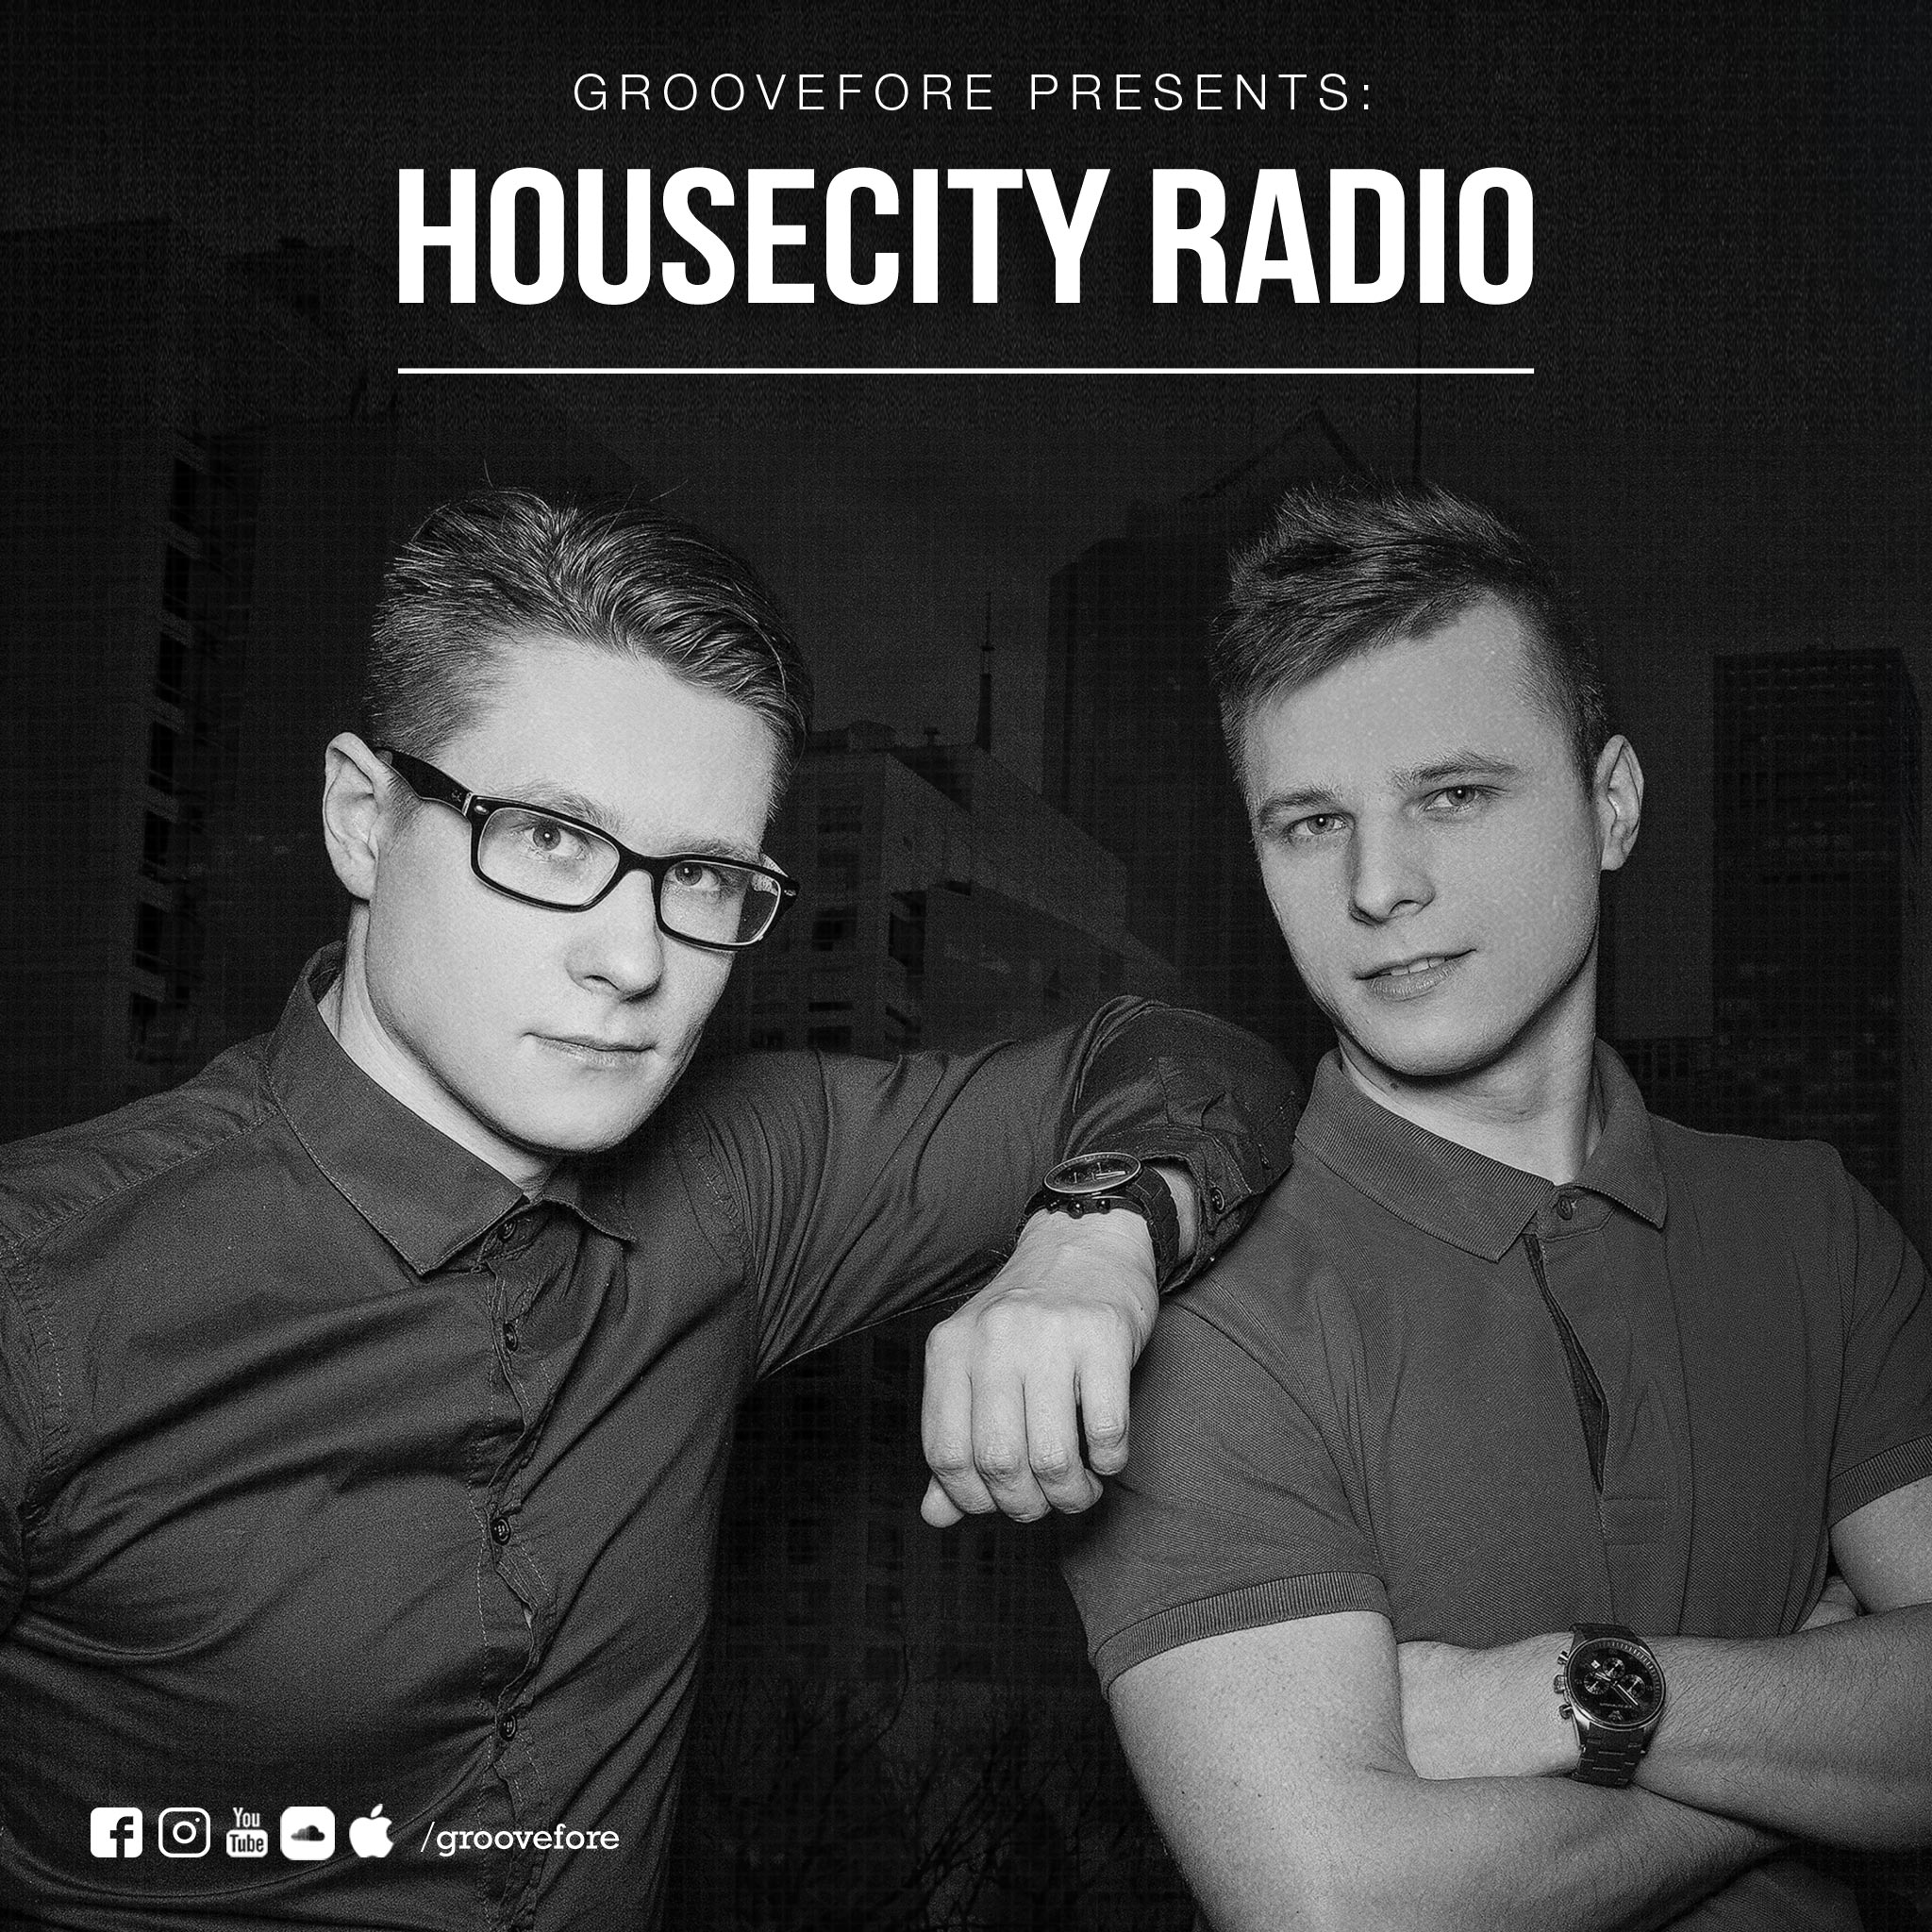 Groovefore presents Housecity Radio